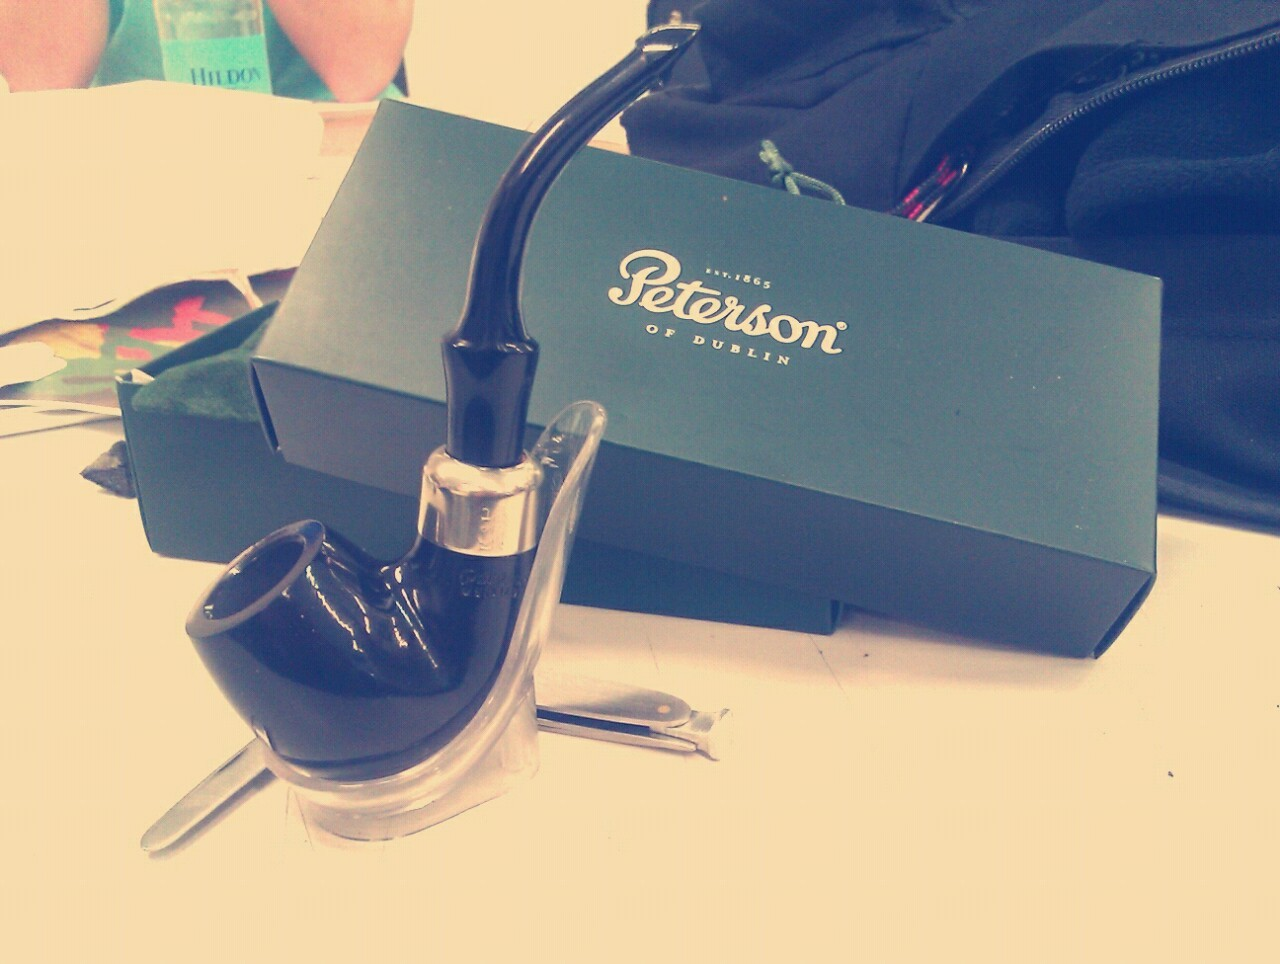 sammbear92:  My new Peterson.  She's beautiful. Is that a p-lip I see?